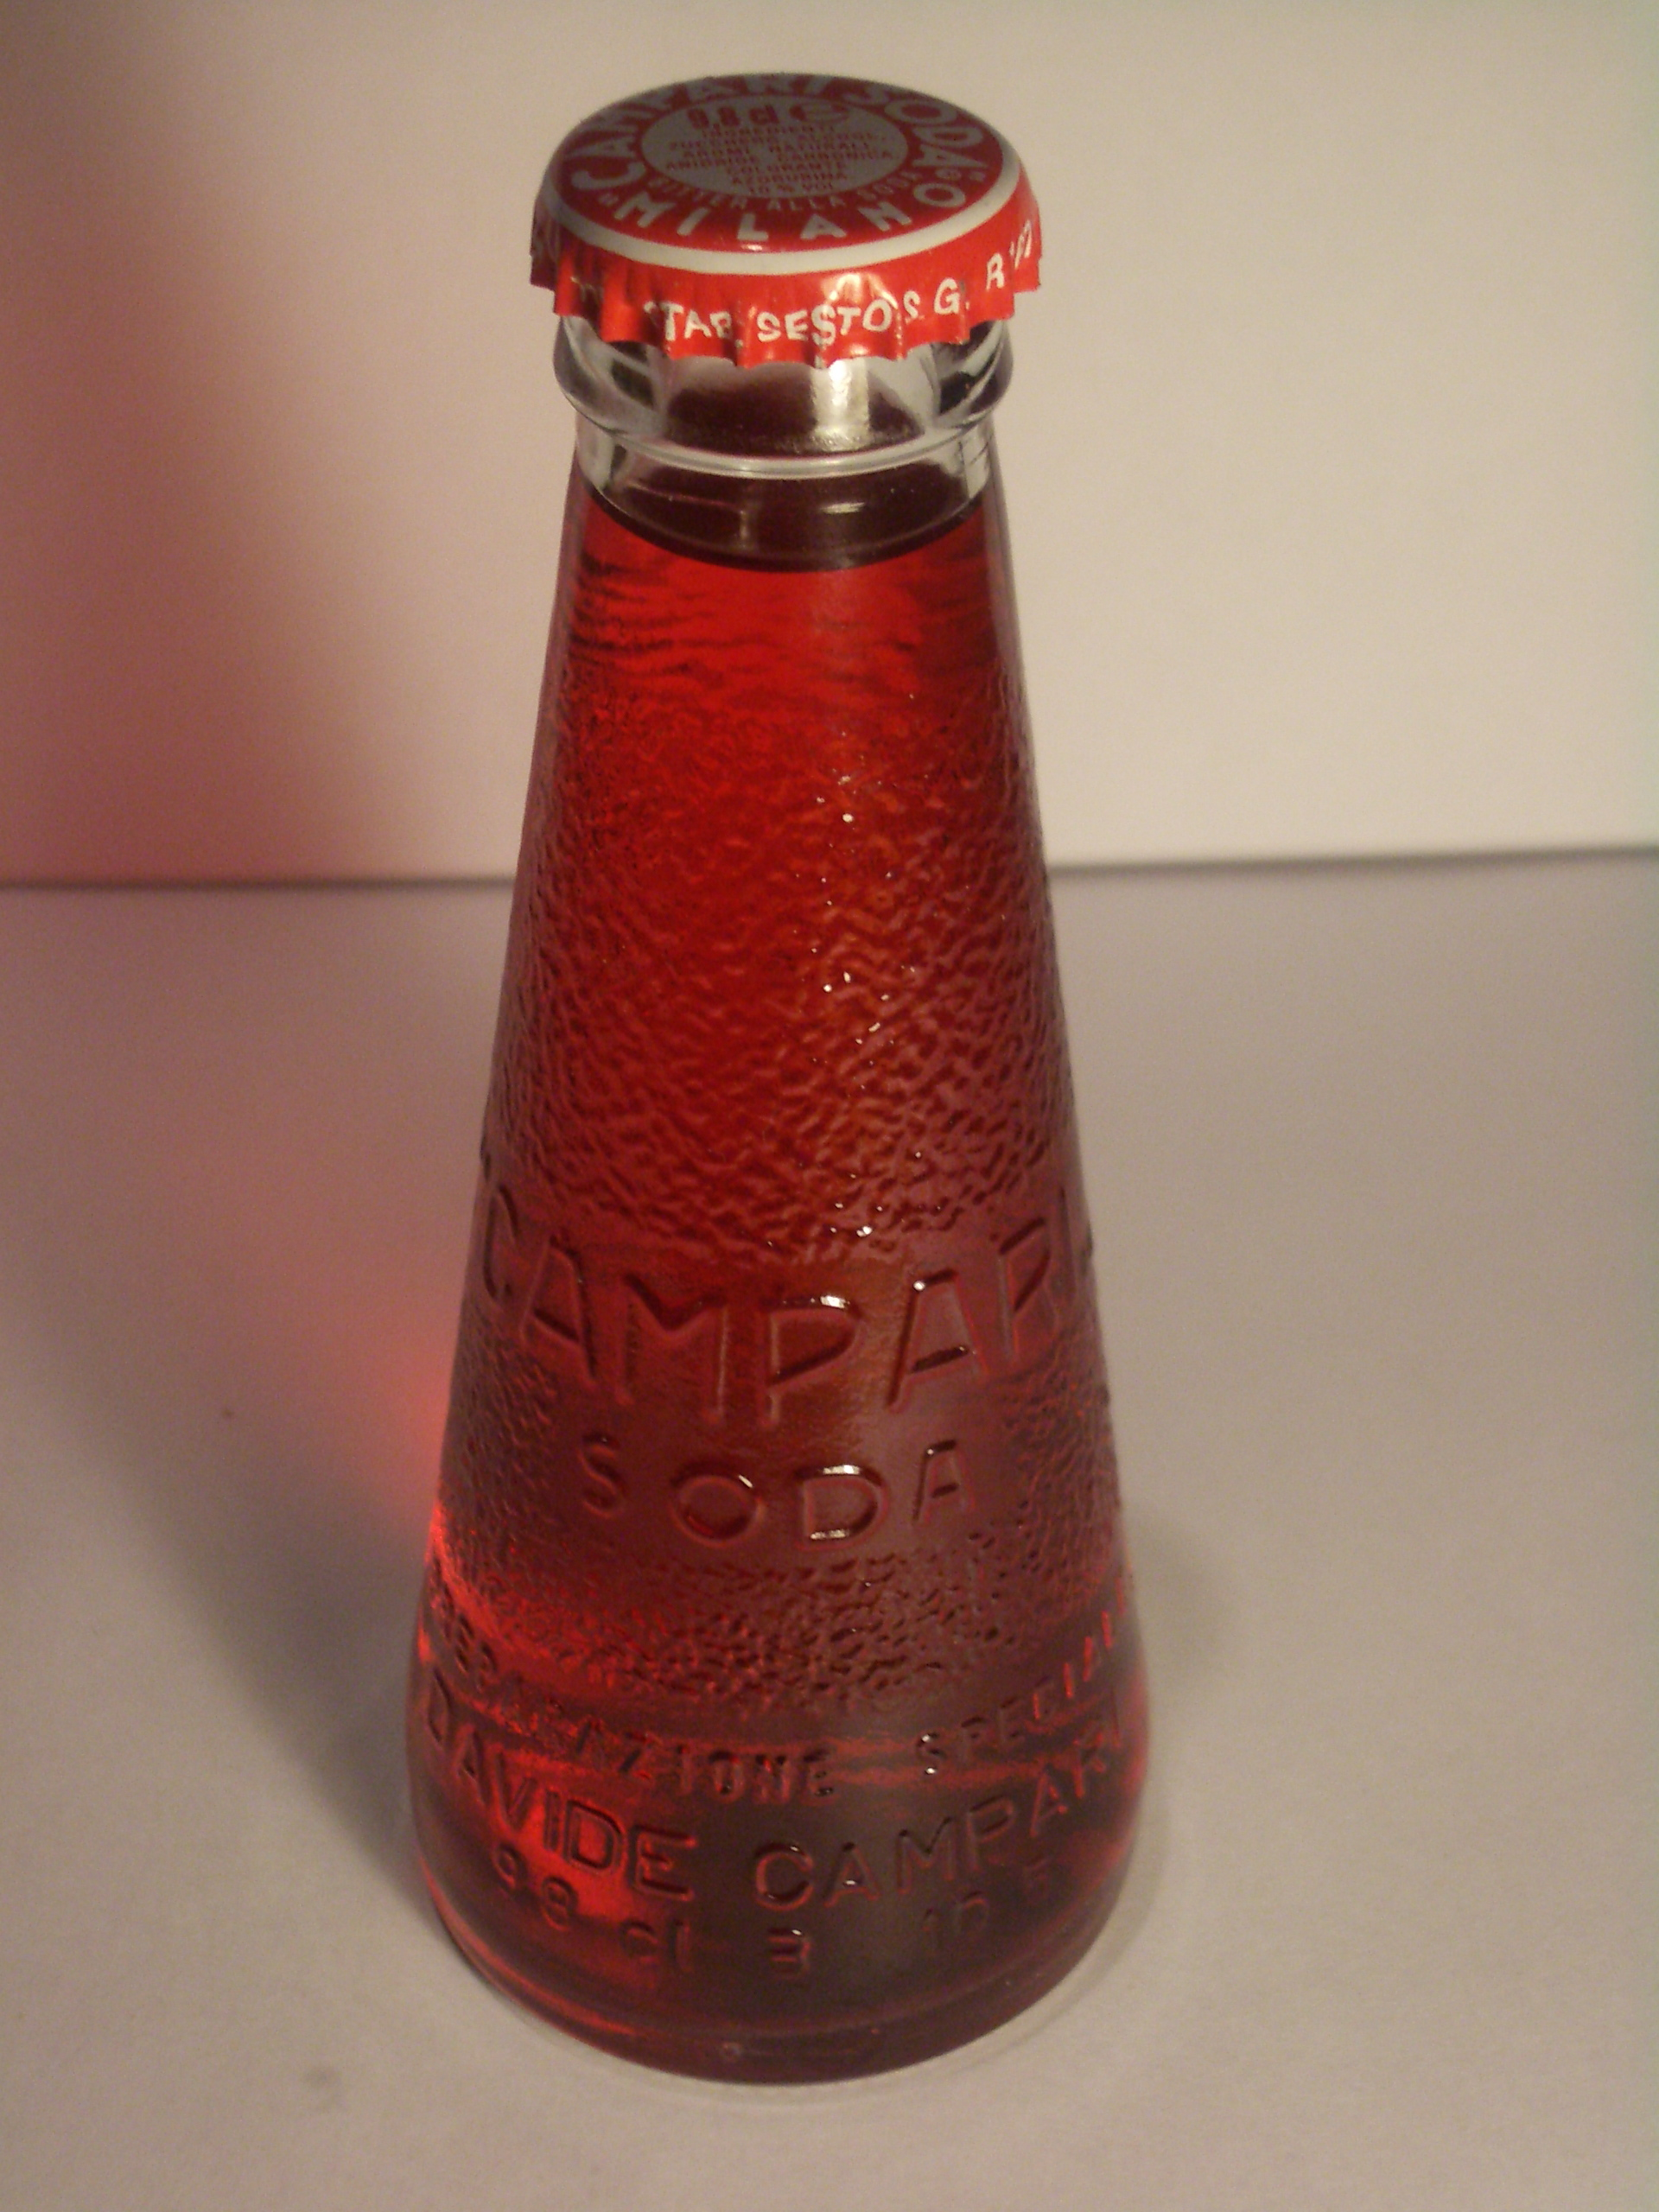 File:Campari Soda.jpg - Wikipedia, the free encyclopedia